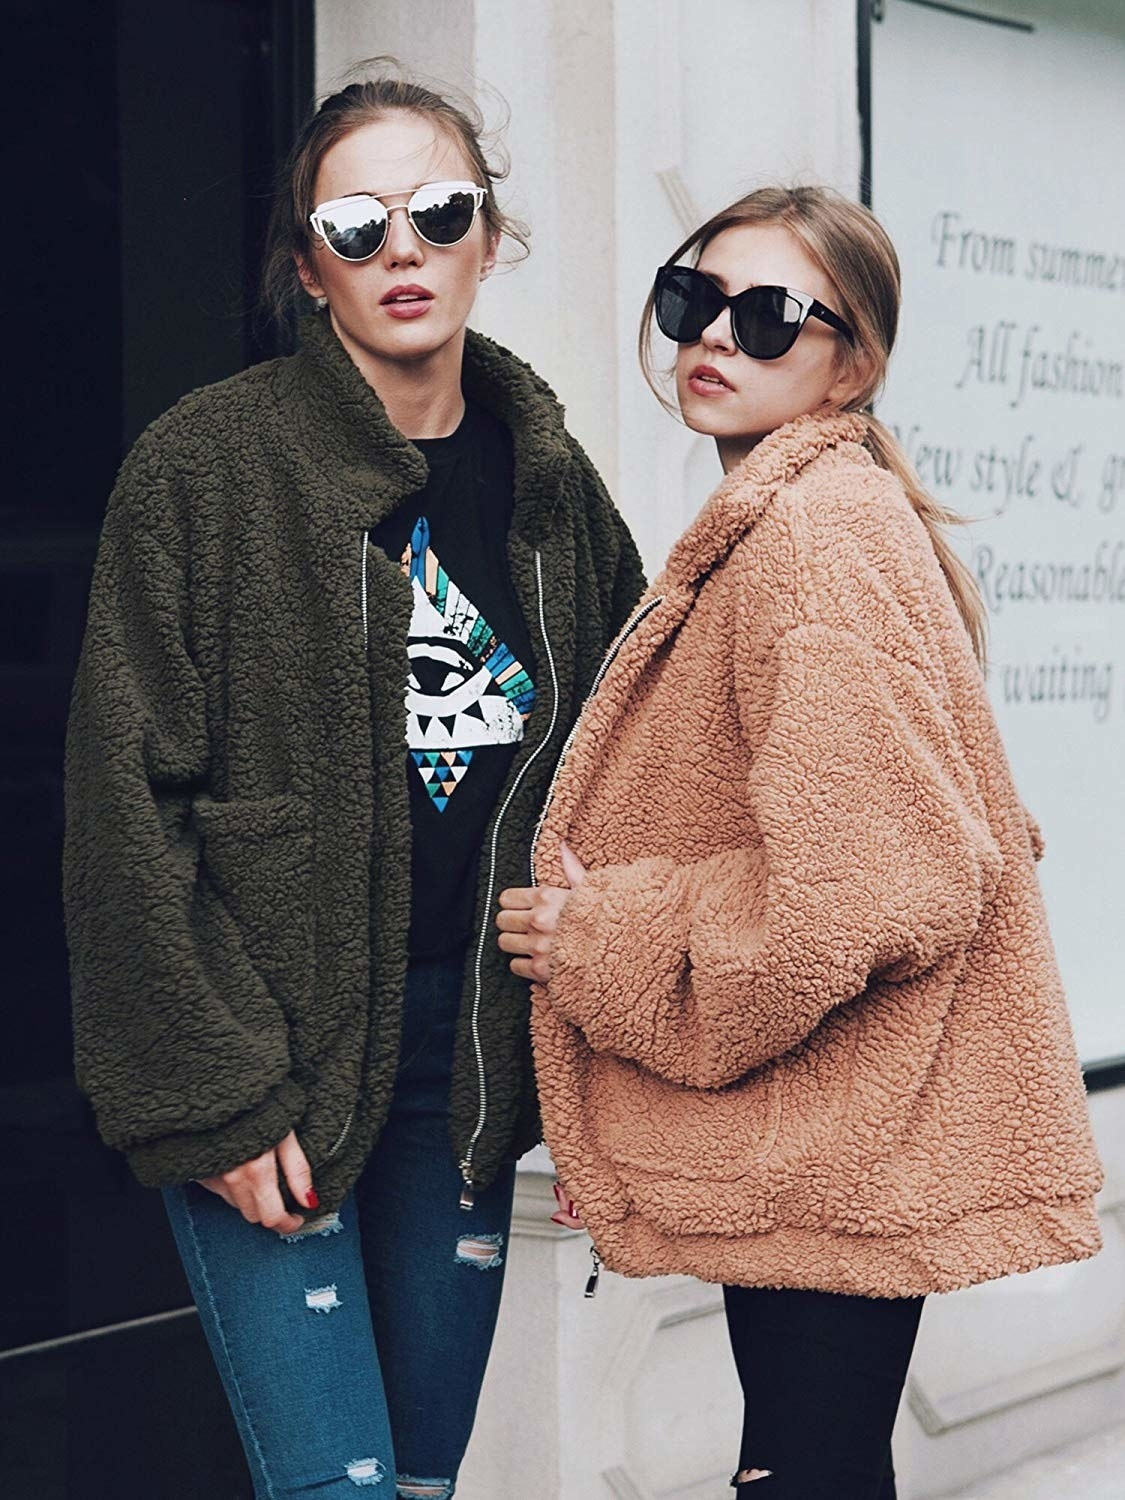 Two models in the jackets: one in green and one in light brown